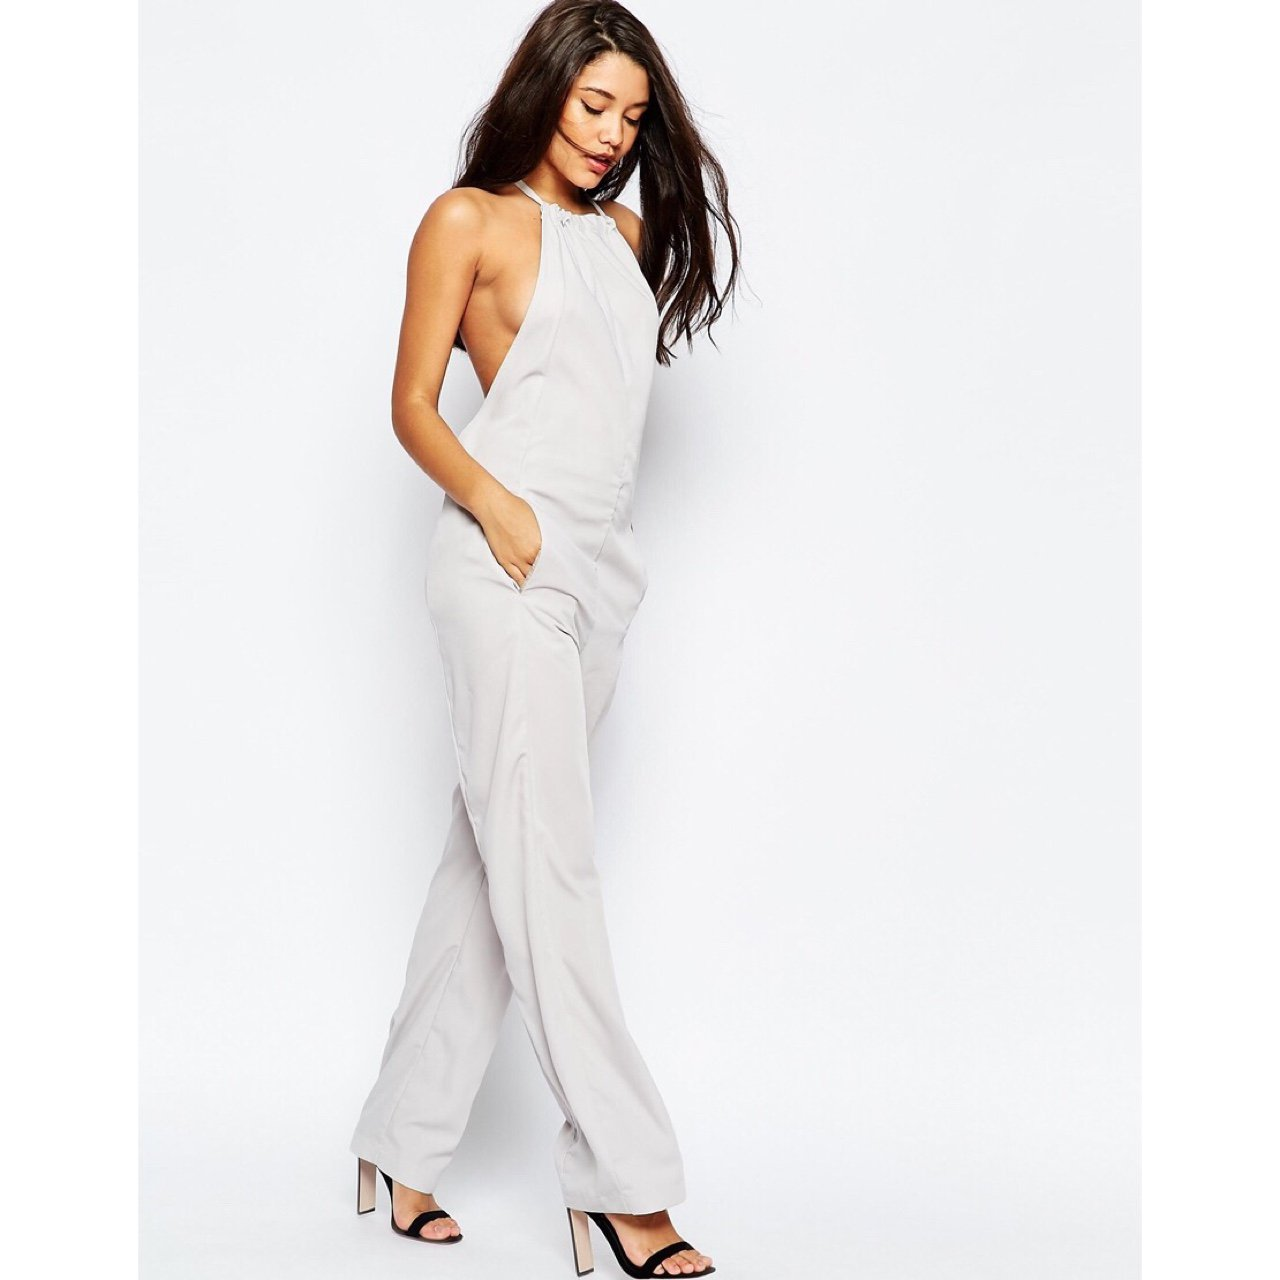 c8e5be3e88e7 ASOS High Neck Backless Jumpsuit in light grey. BRAND NEW IN - Depop